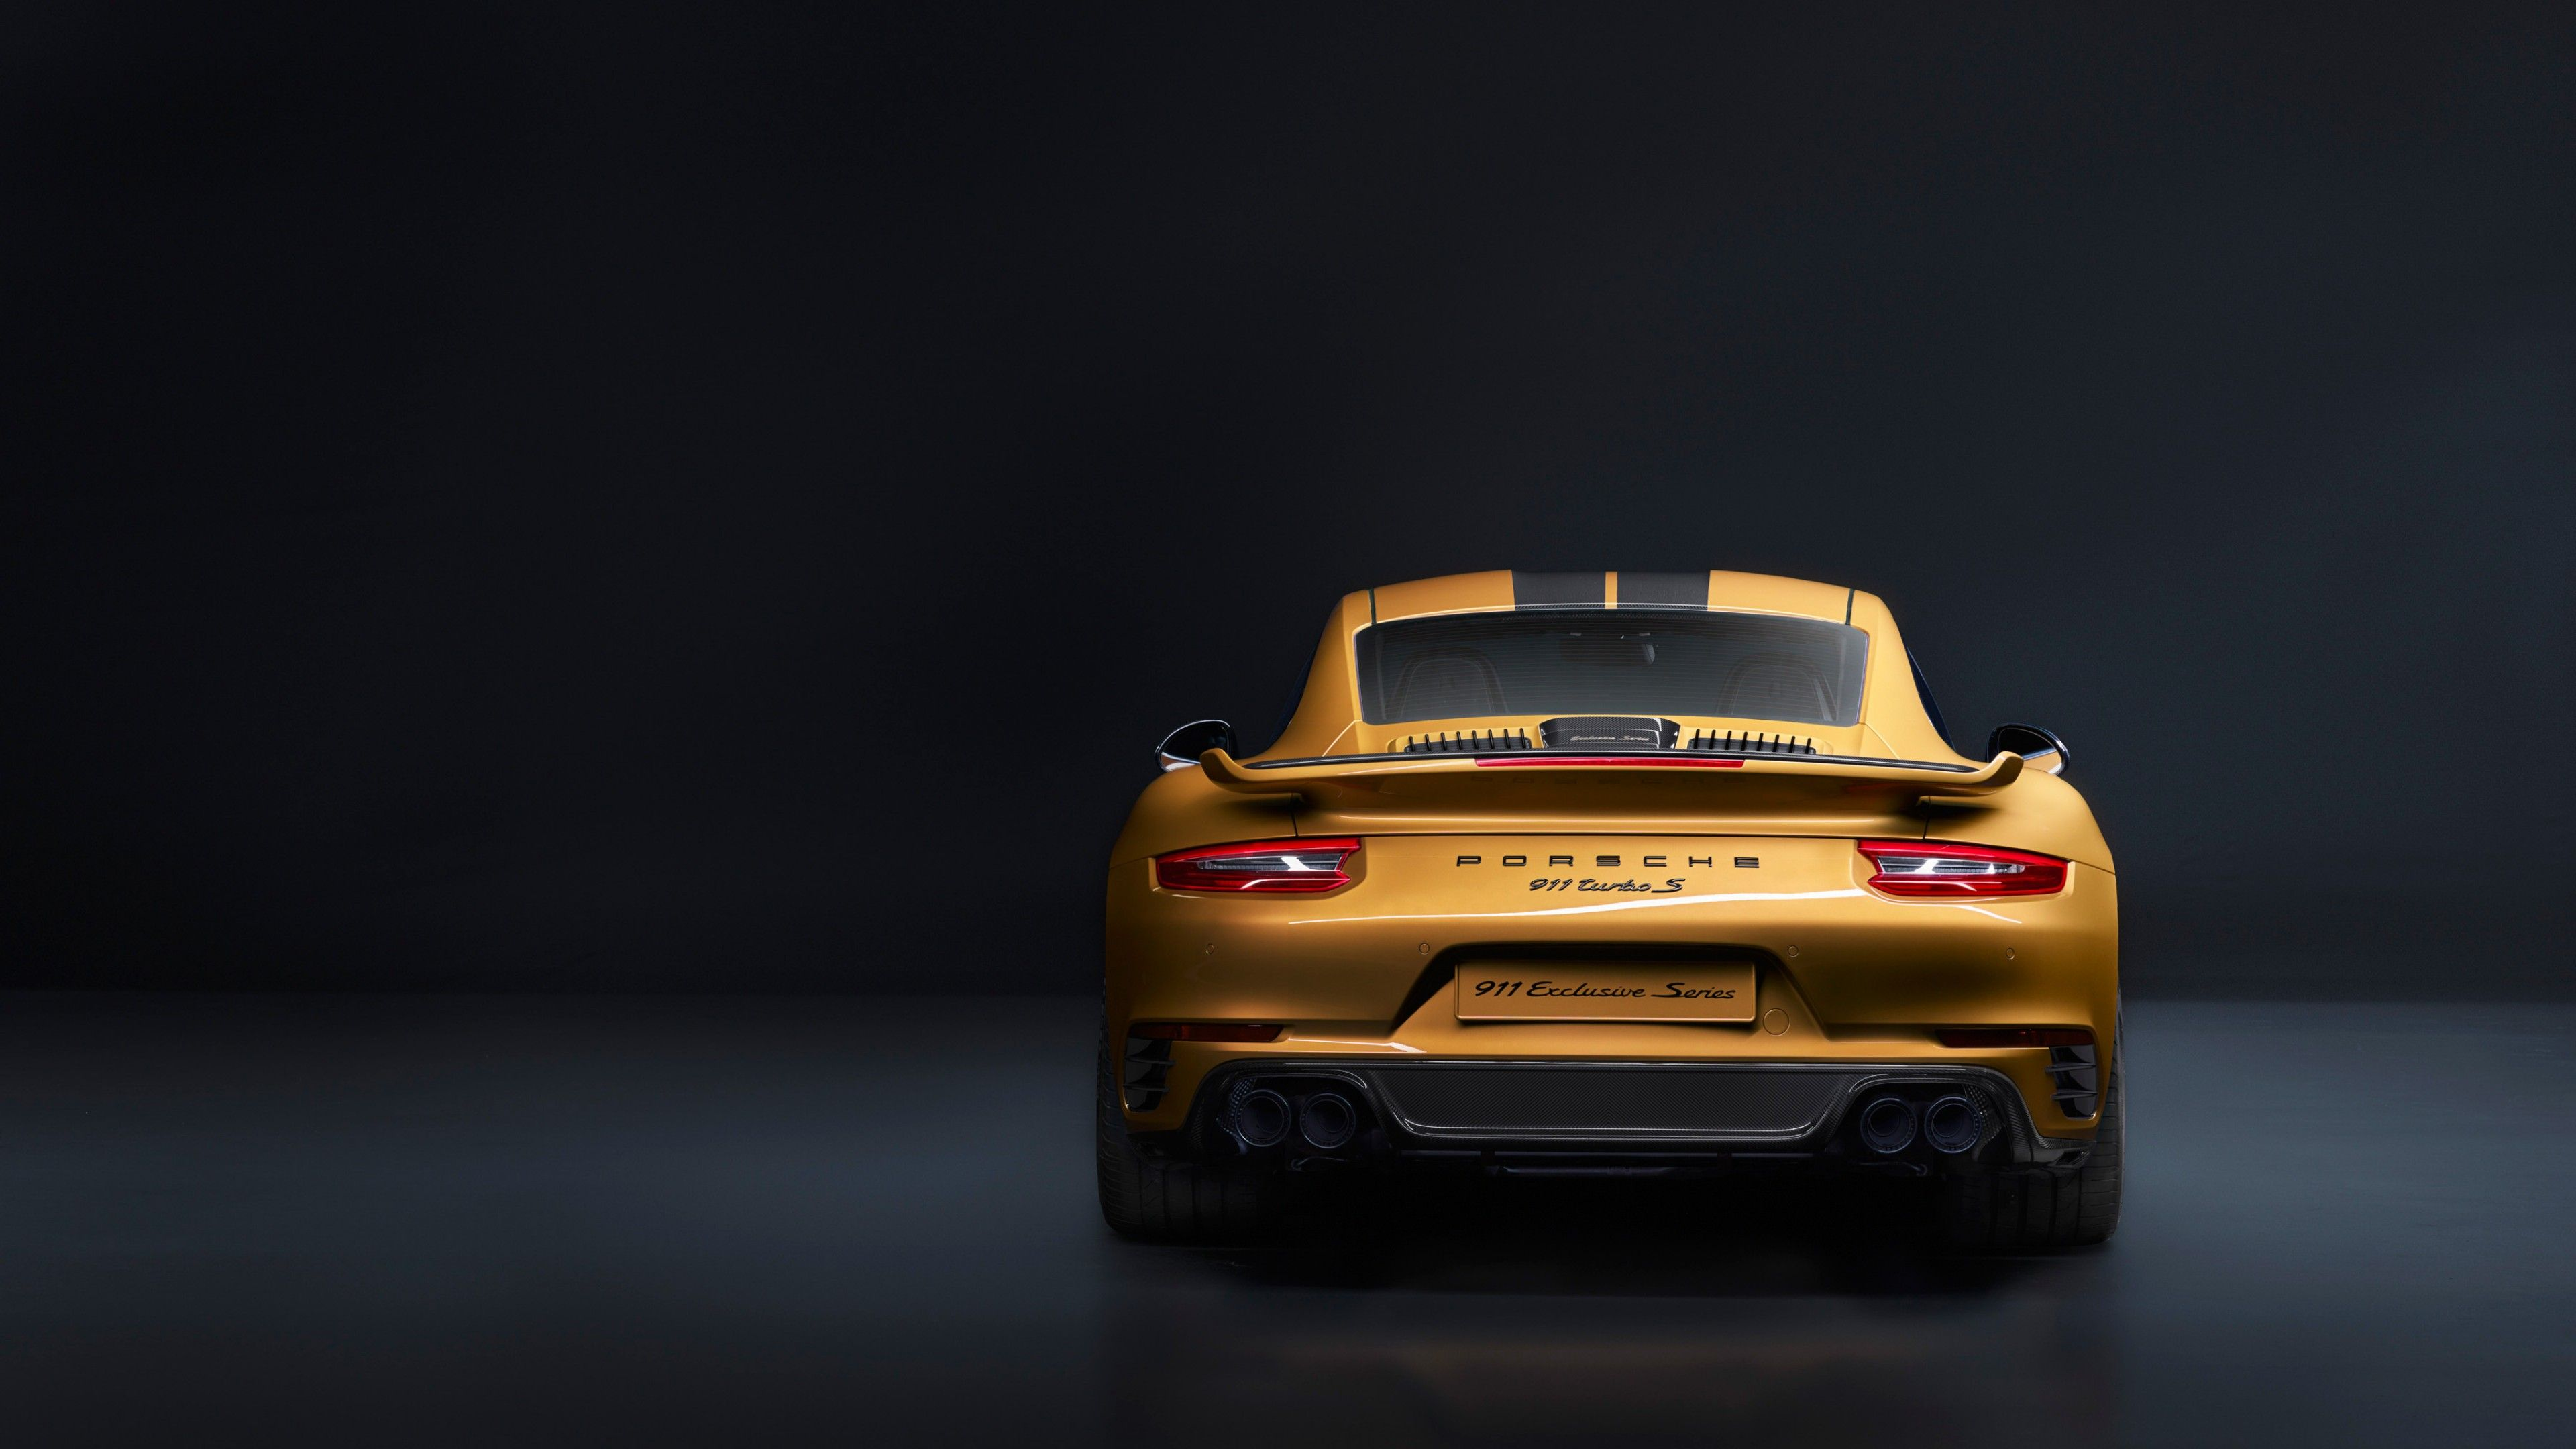 Porsche 4k Wallpapers Top Free Porsche 4k Backgrounds Wallpaperaccess